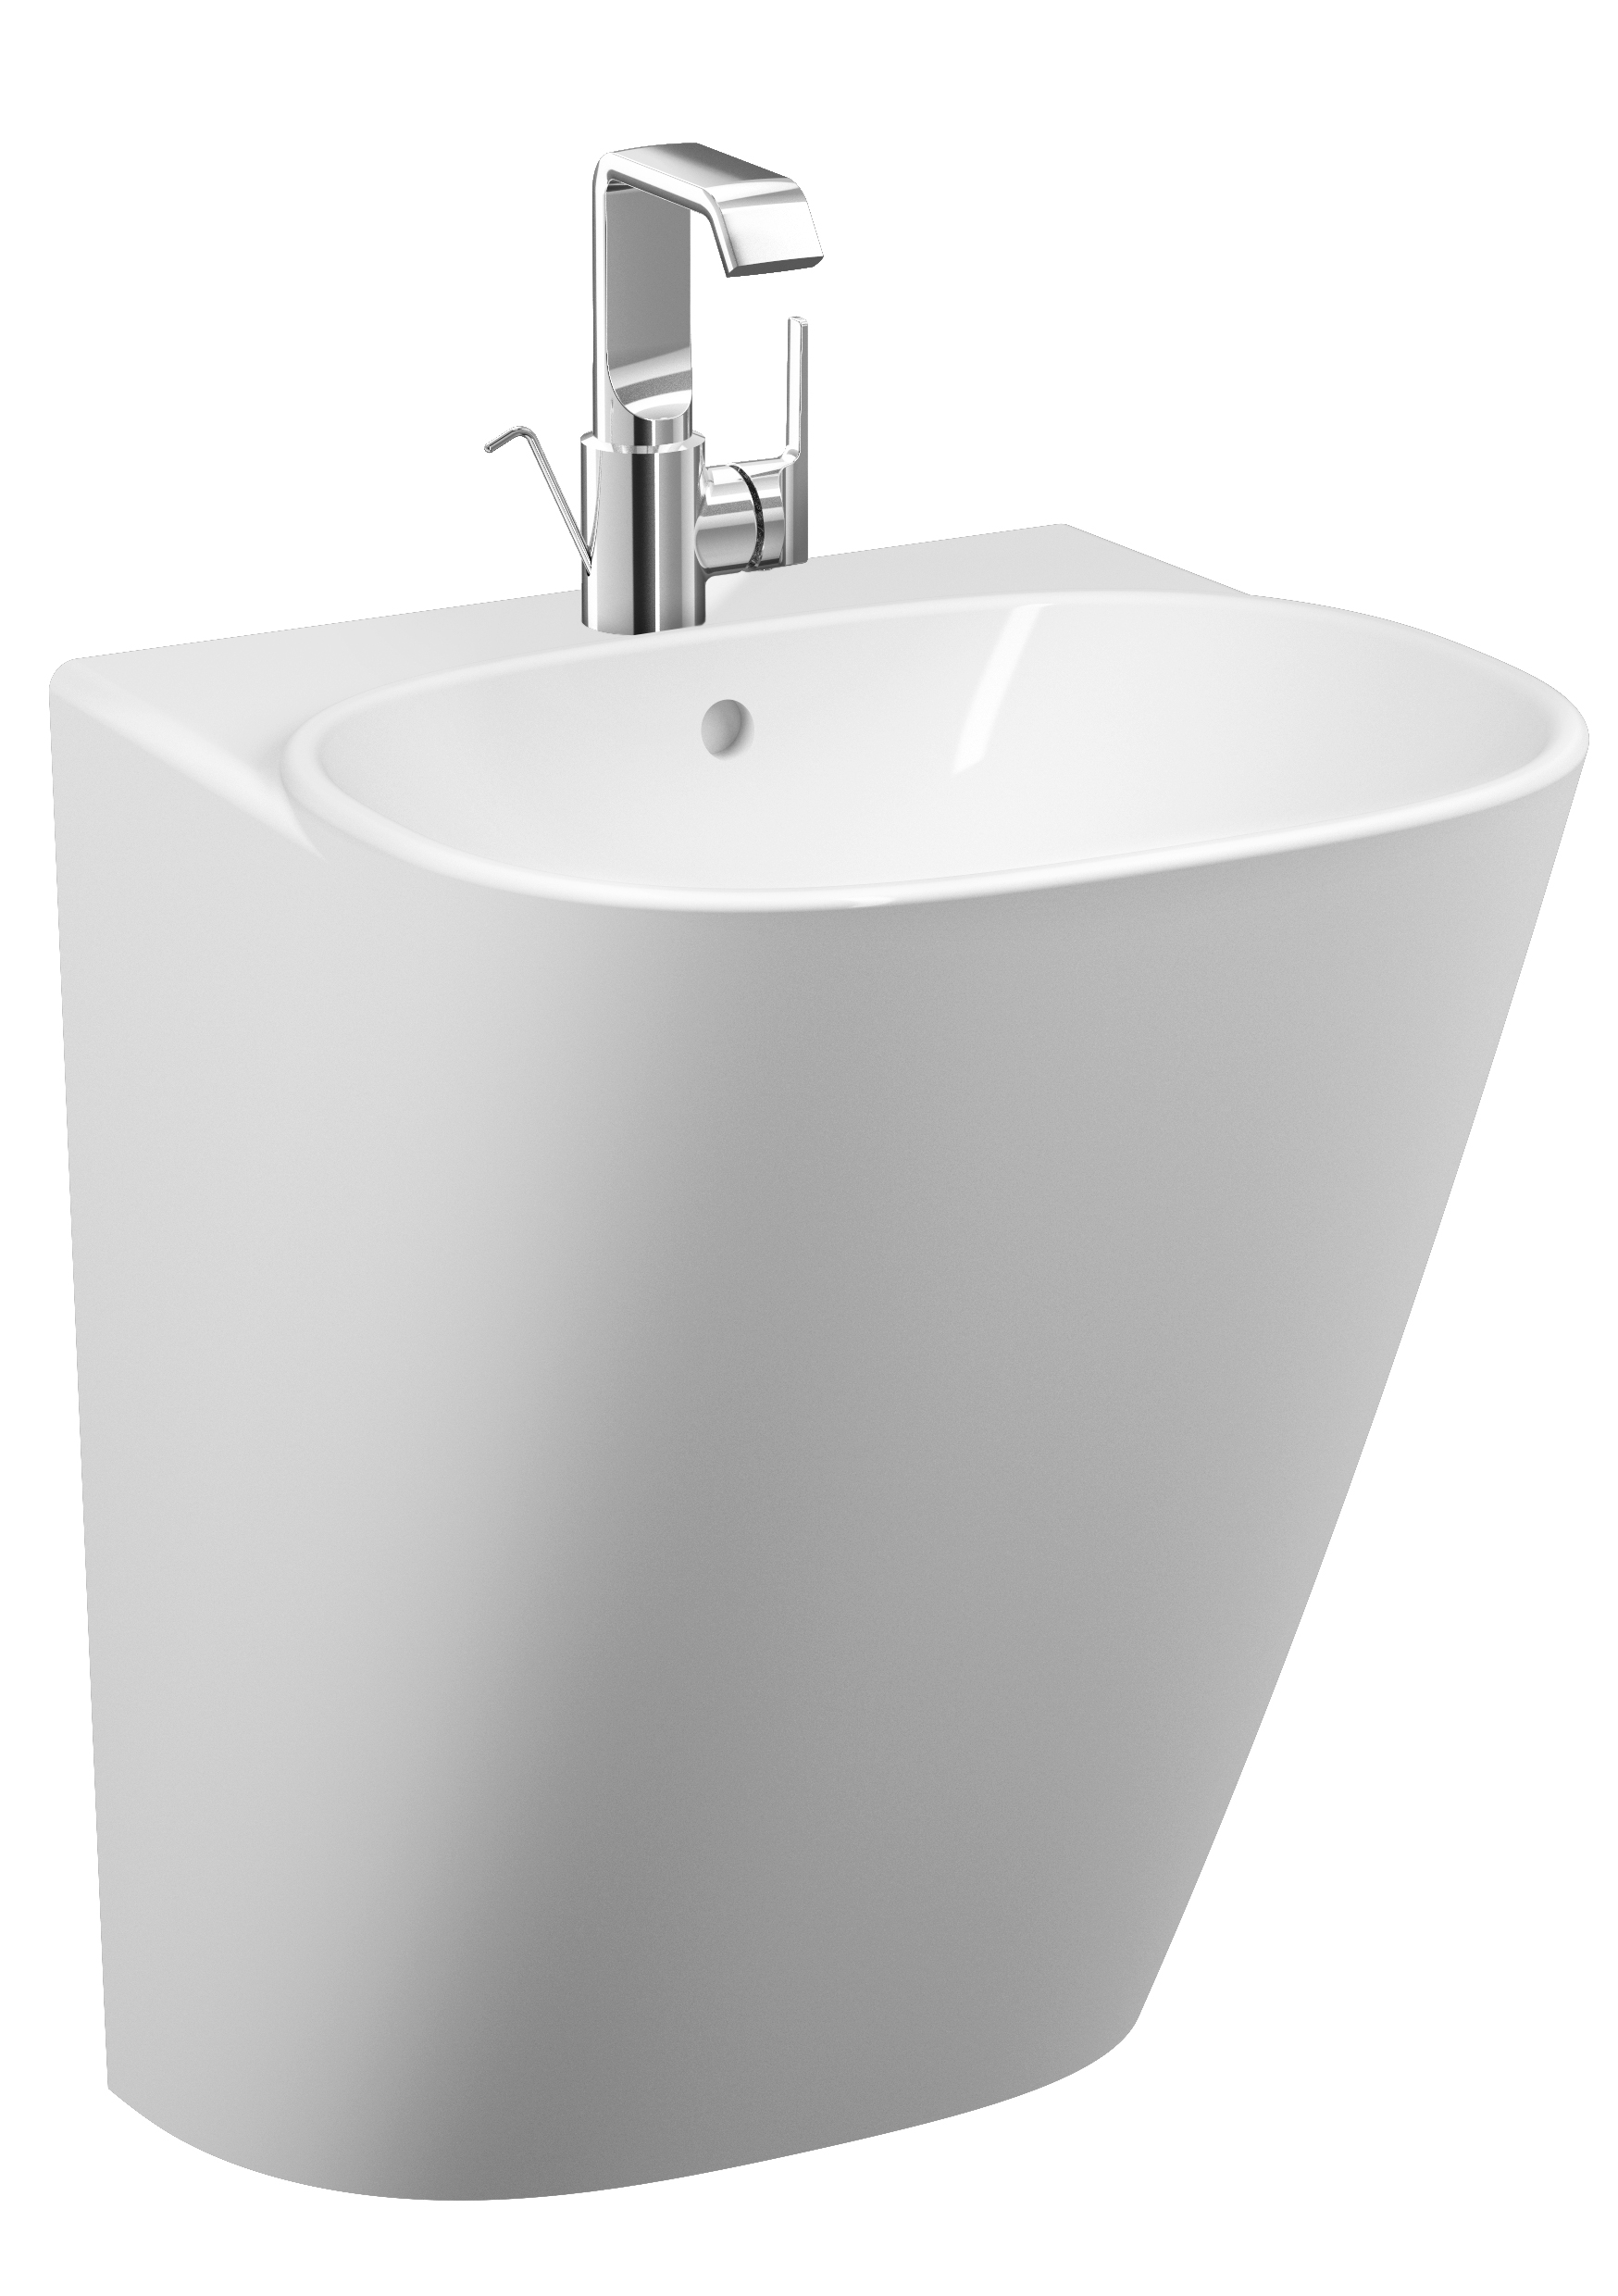 click on Half Monoblock Basin image to enlarge